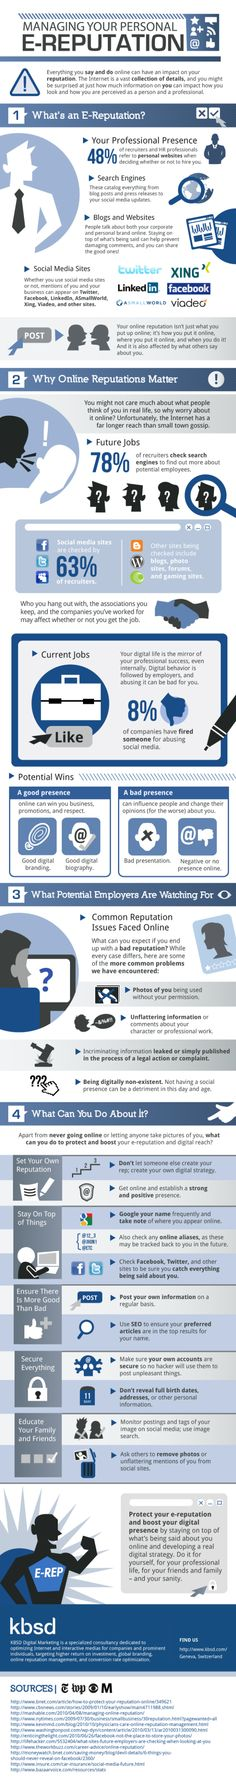 Infographic: Managing your personal e-reputation by KBSD #infographics #socialmedia #socialnetworks